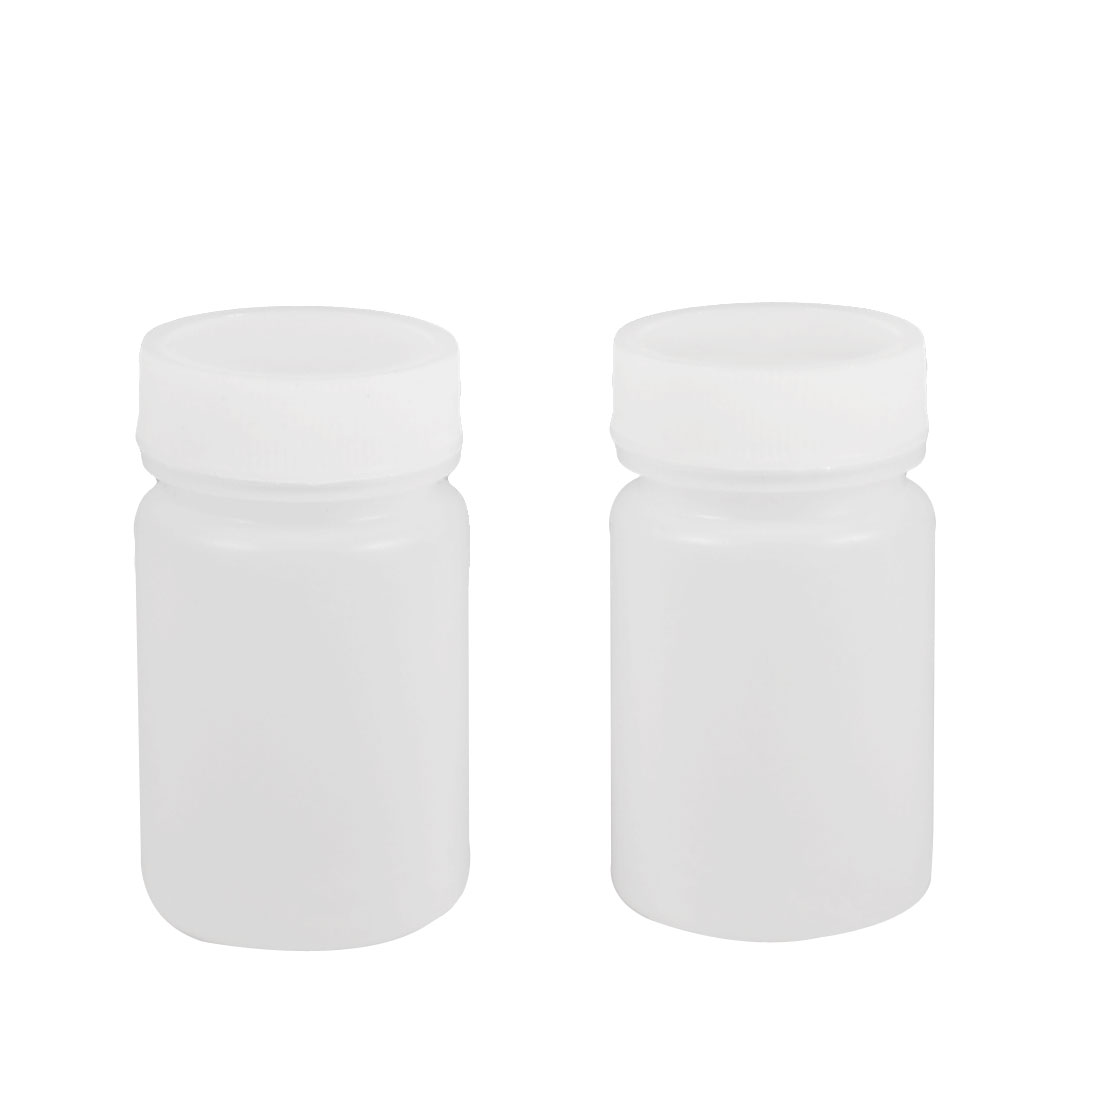 50ml White Plastic Cylinder Shaped Chemical Reagent Bottles 2 Pcs